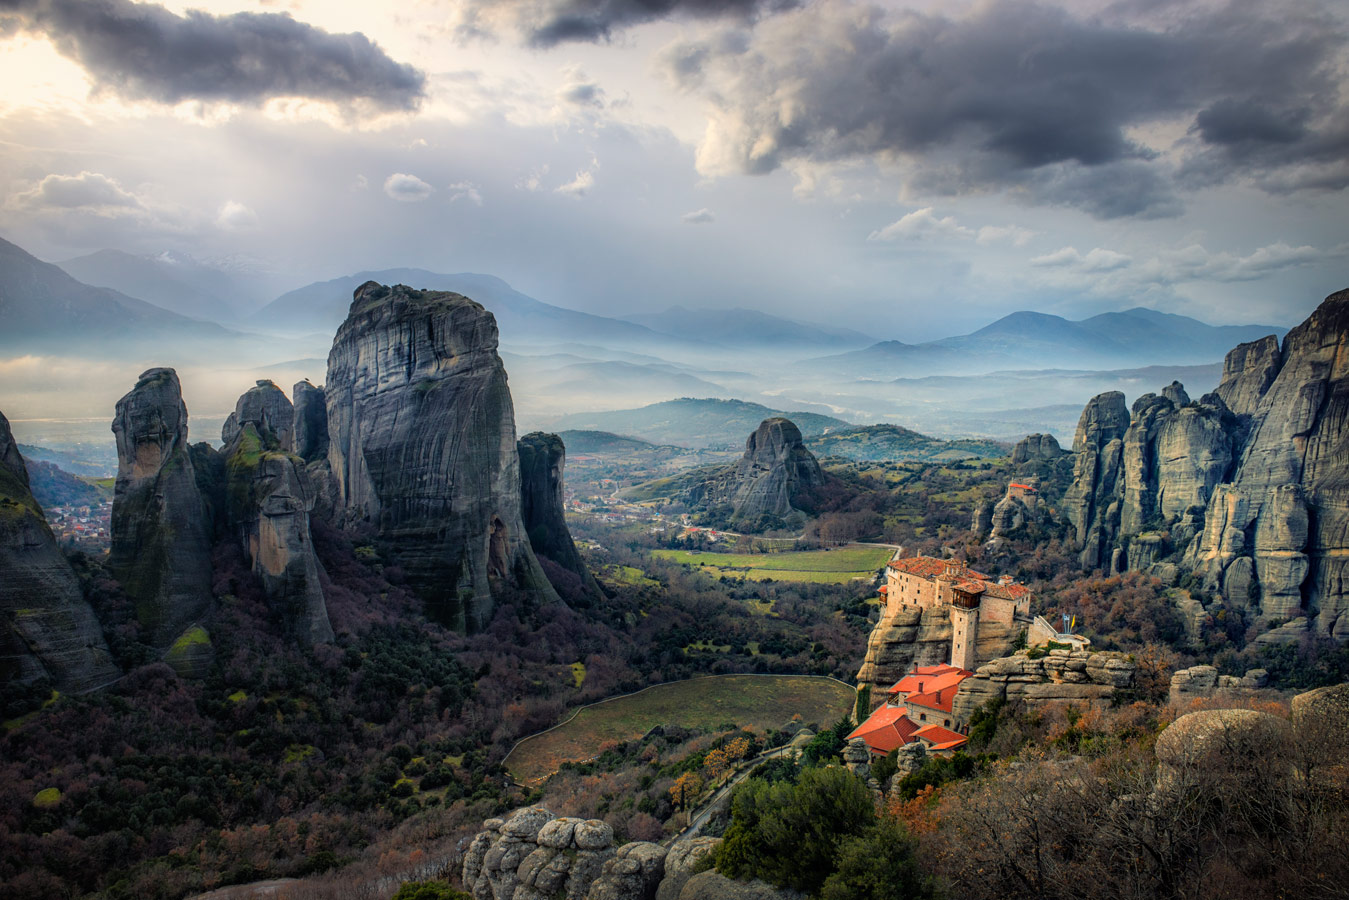 Meteora rock formation with monasteries on top of them, Greece, © Stathis Floros, 15 place, Wiki Loves Earth Photo Contest